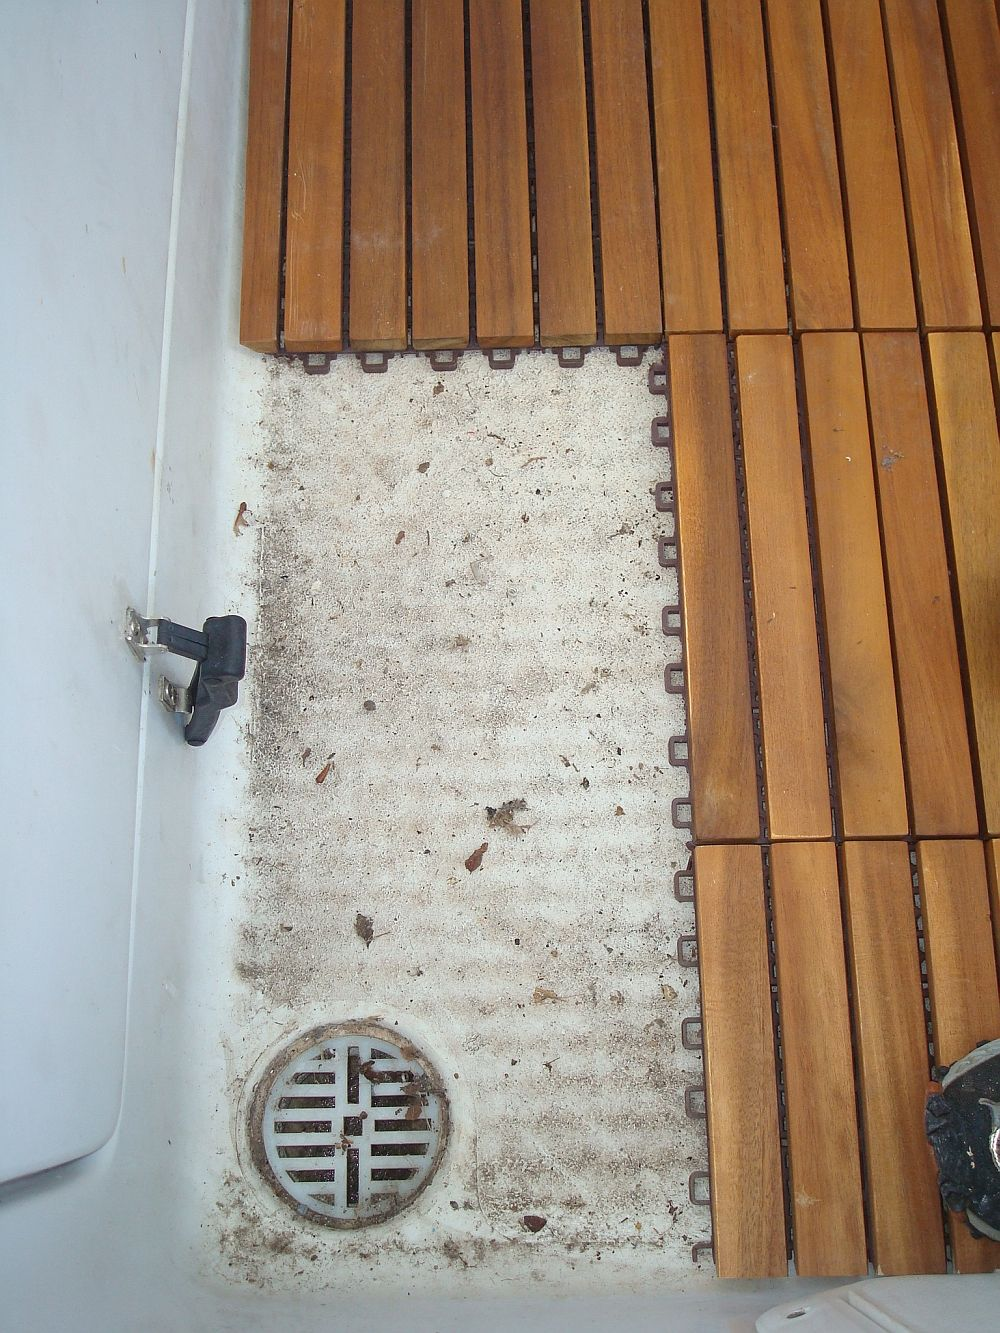 Diy teak tile flooring hardwood tiles refresh a tired old boat a deck or shower